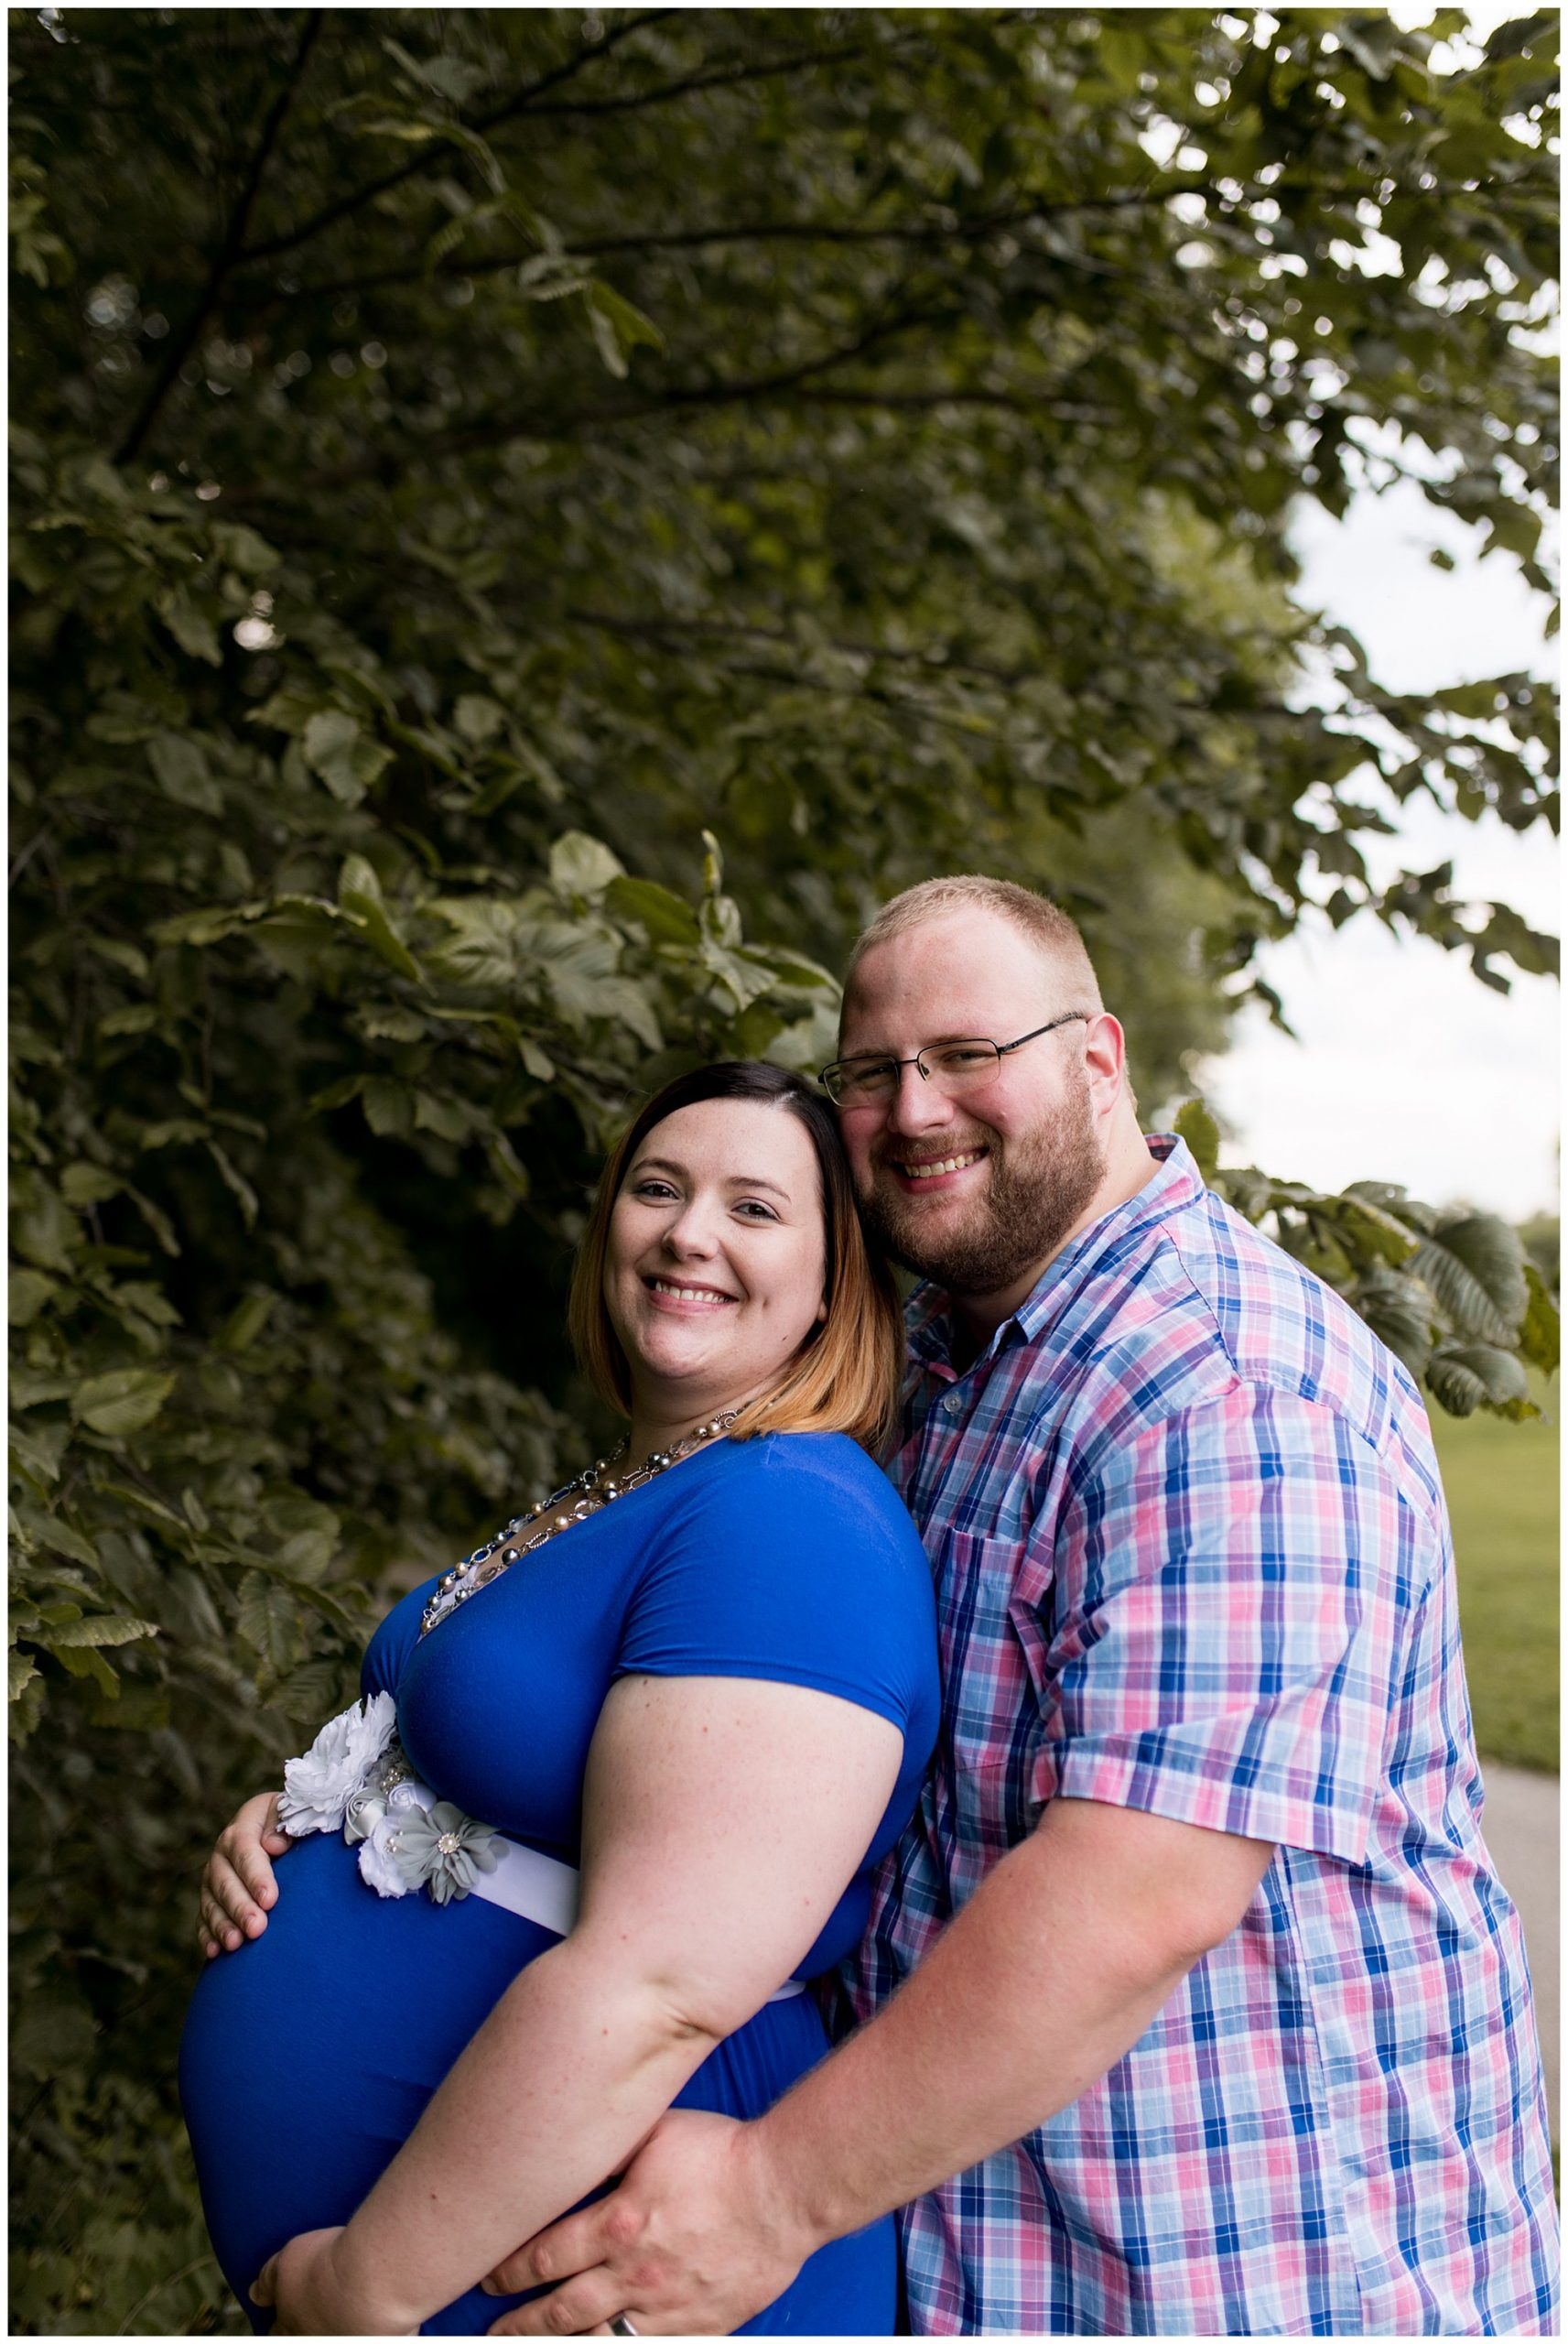 Jackson Morrow Park maternity session in Kokomo Indiana